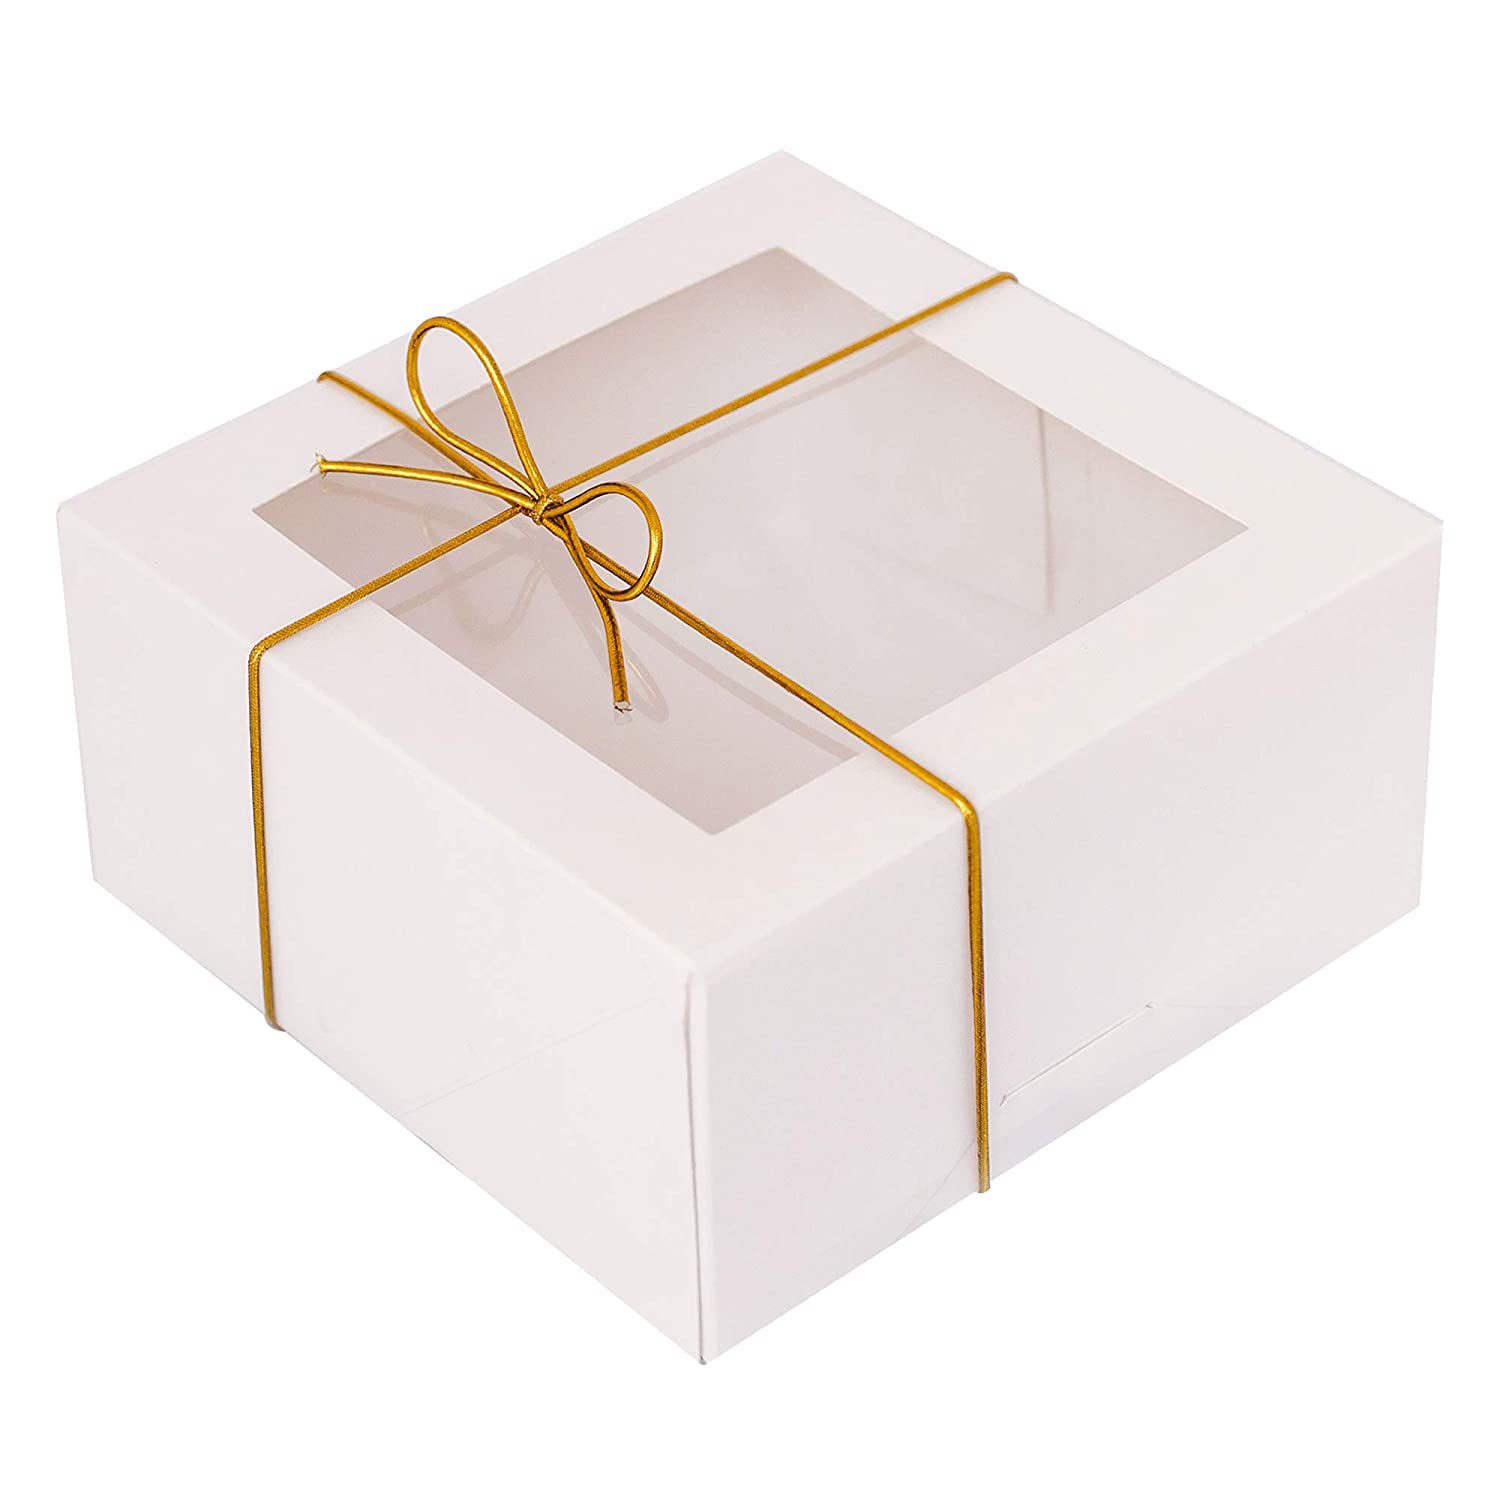 White Bakery Boxes with Window (20 Pack, 6x6x3 Inch)-Includes 20 Gold Elastic Bowties-Pre Assembled Auto Pop Up Bakery Box-Multipurpose use as Cookie Boxes, Dessert Boxes, Pastry Boxes, Treat Boxes-Sitka Spruce.